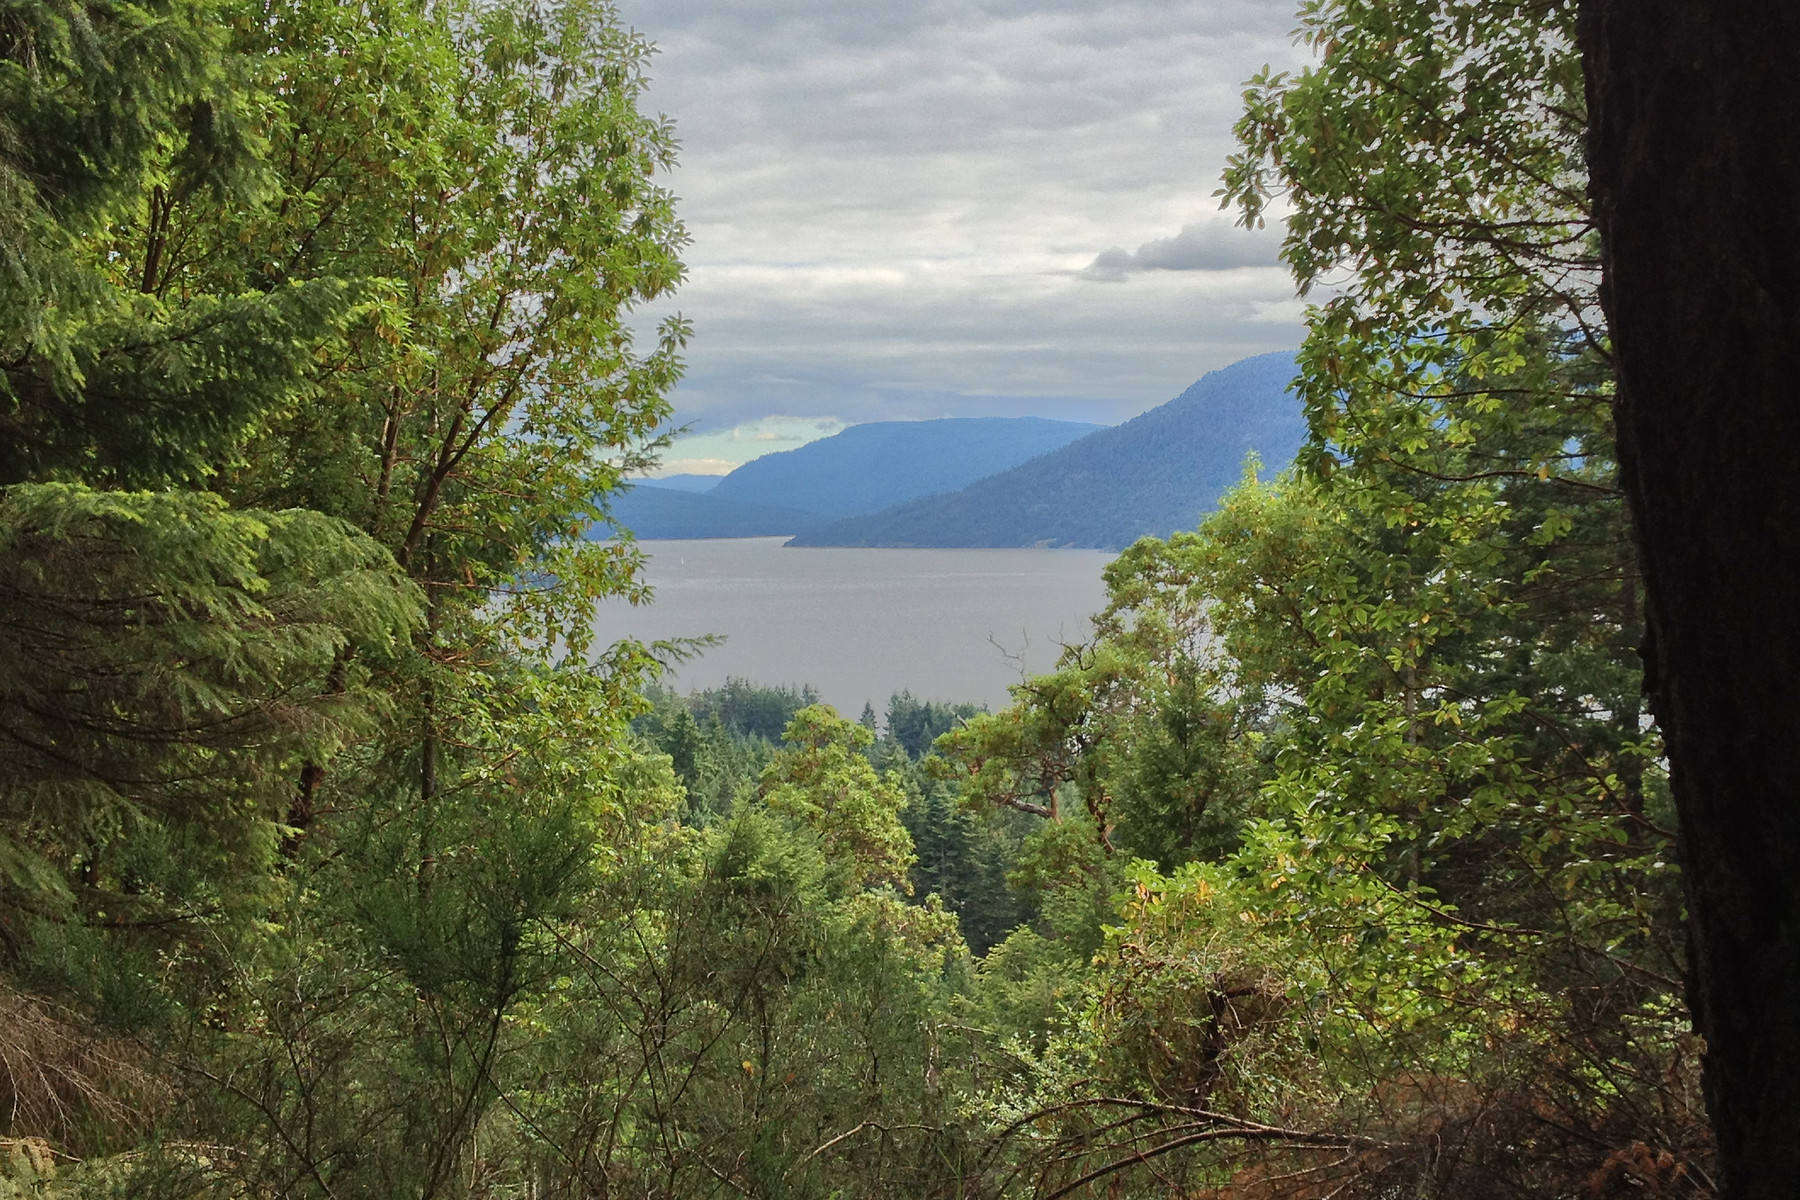 Land for Sale at Oceanview Lot in Channel Ridge Lot 1 Maple Ridge Place Salt Spring Island, British Columbia, V8K 1G7 Canada